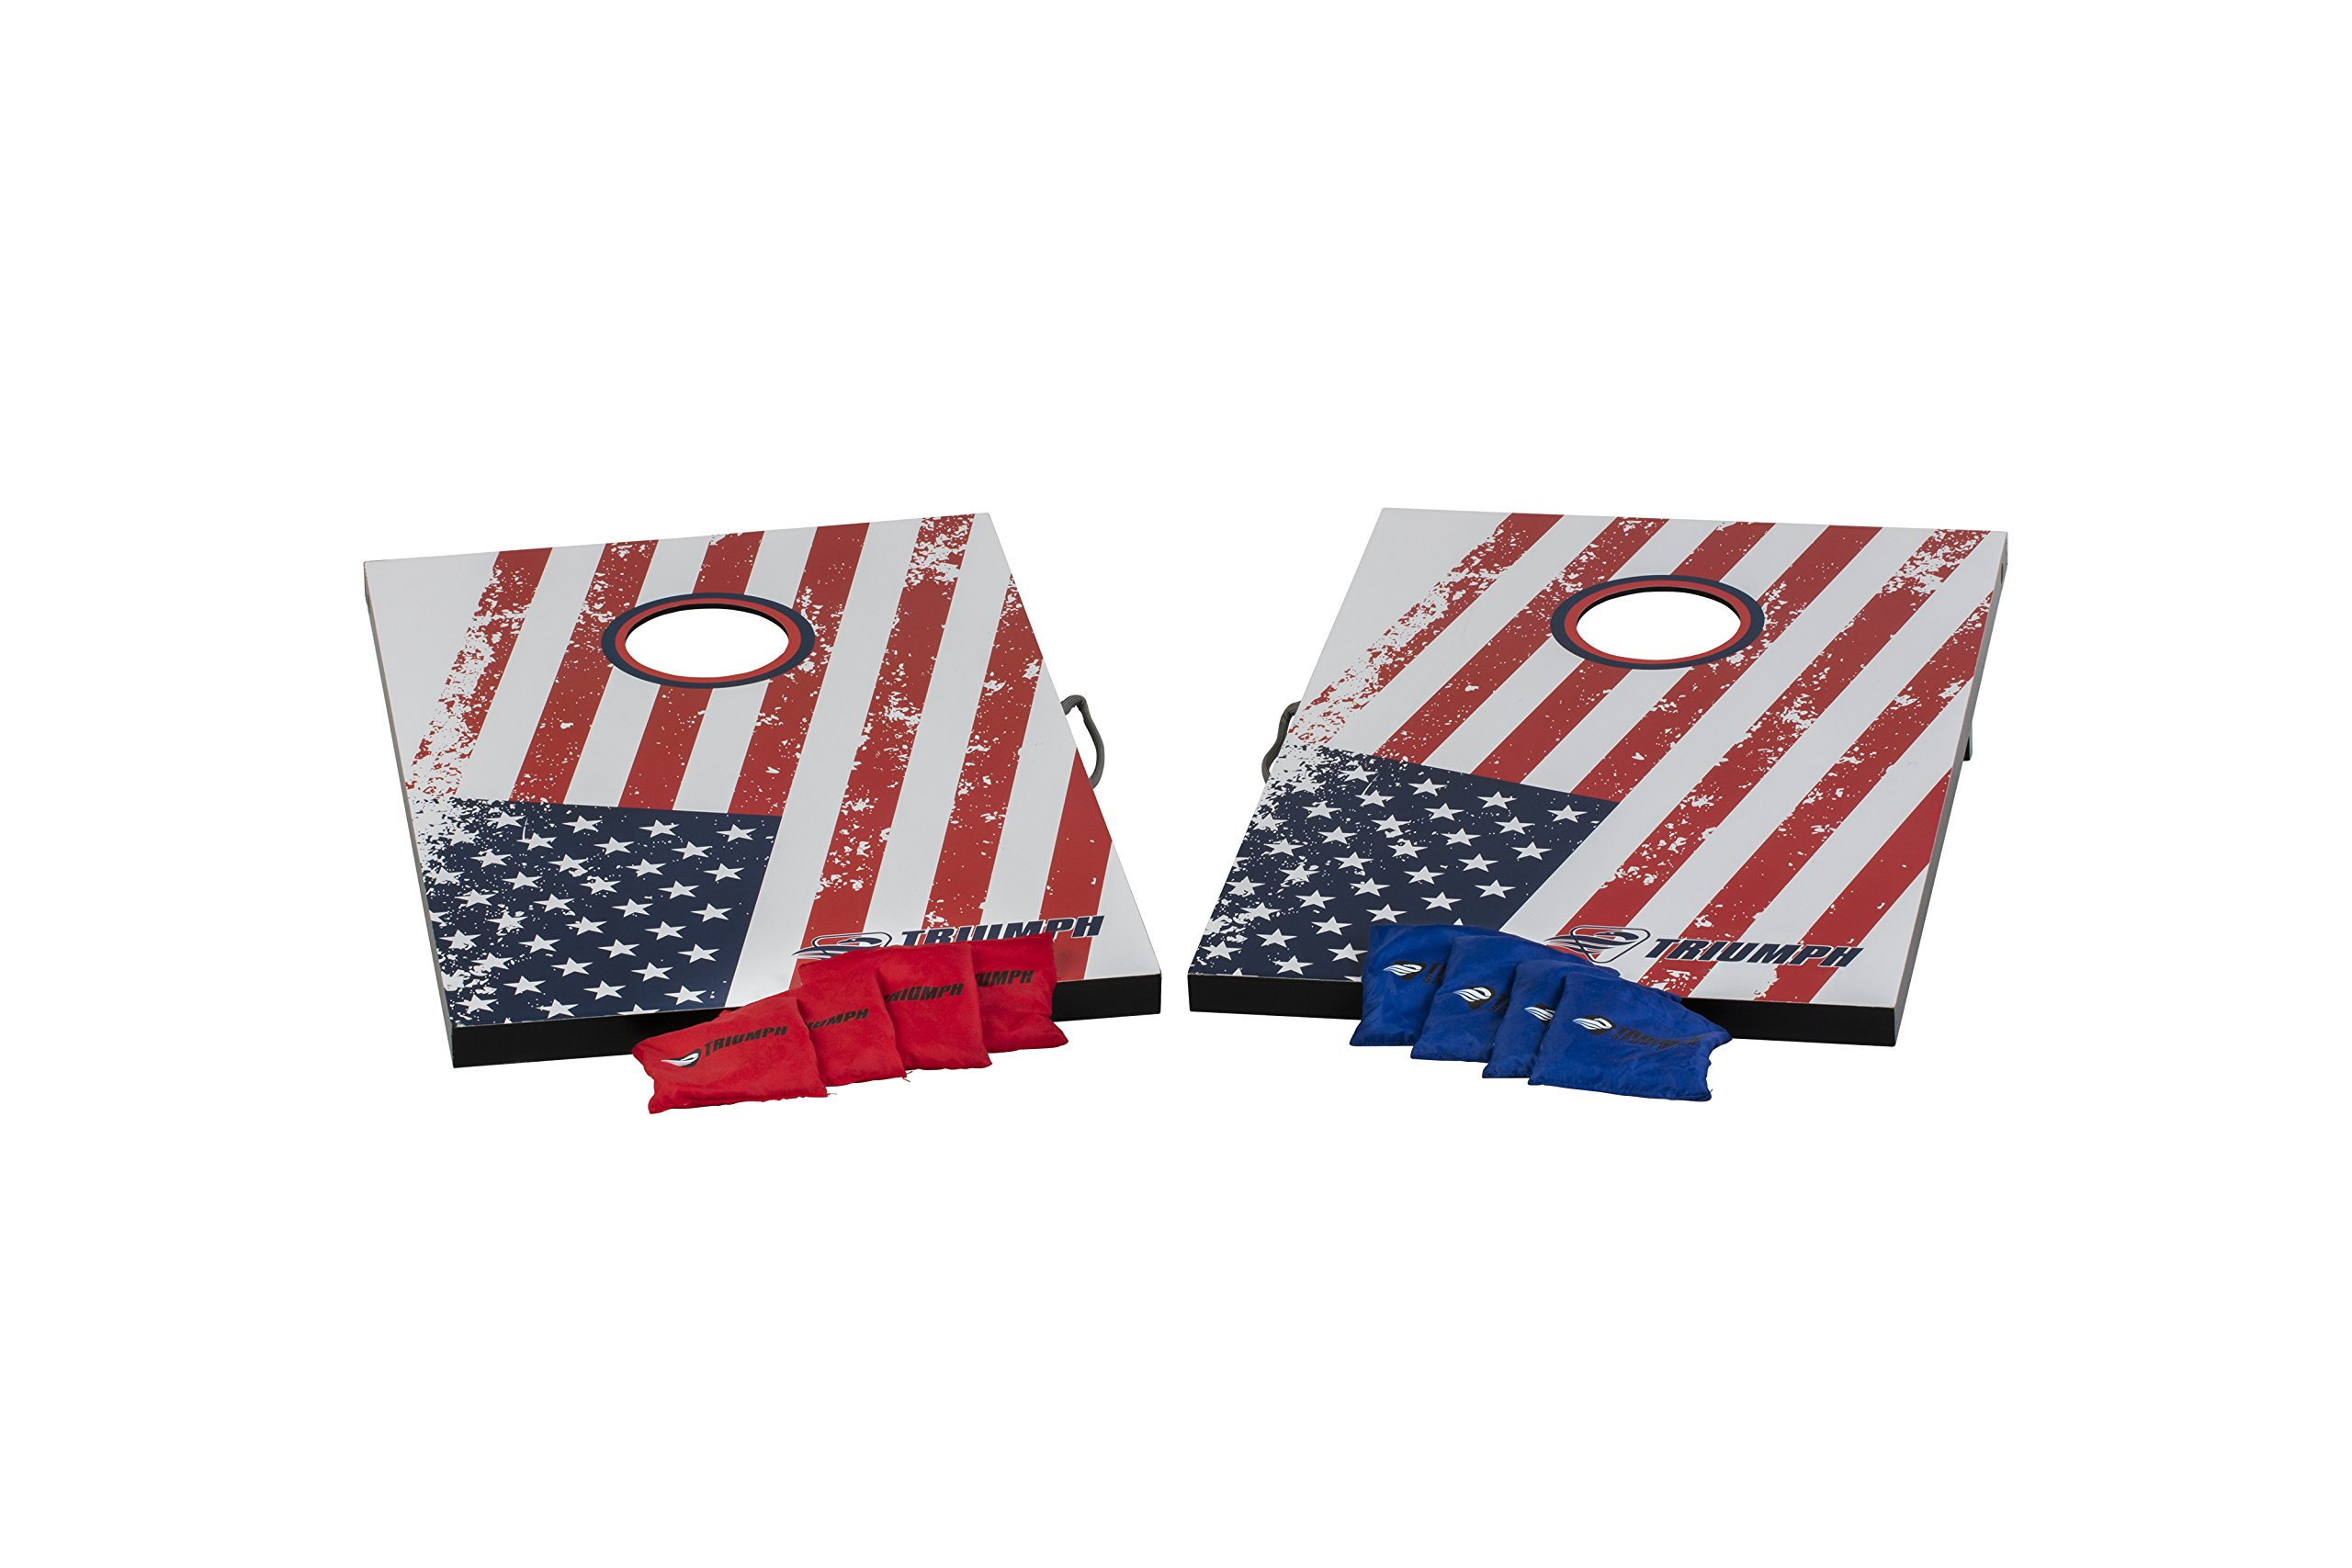 Triumph Patriotic Bean Bag Toss Set Includes Two Boards and Eight All-Weather Bean Bags by Triumph Sports